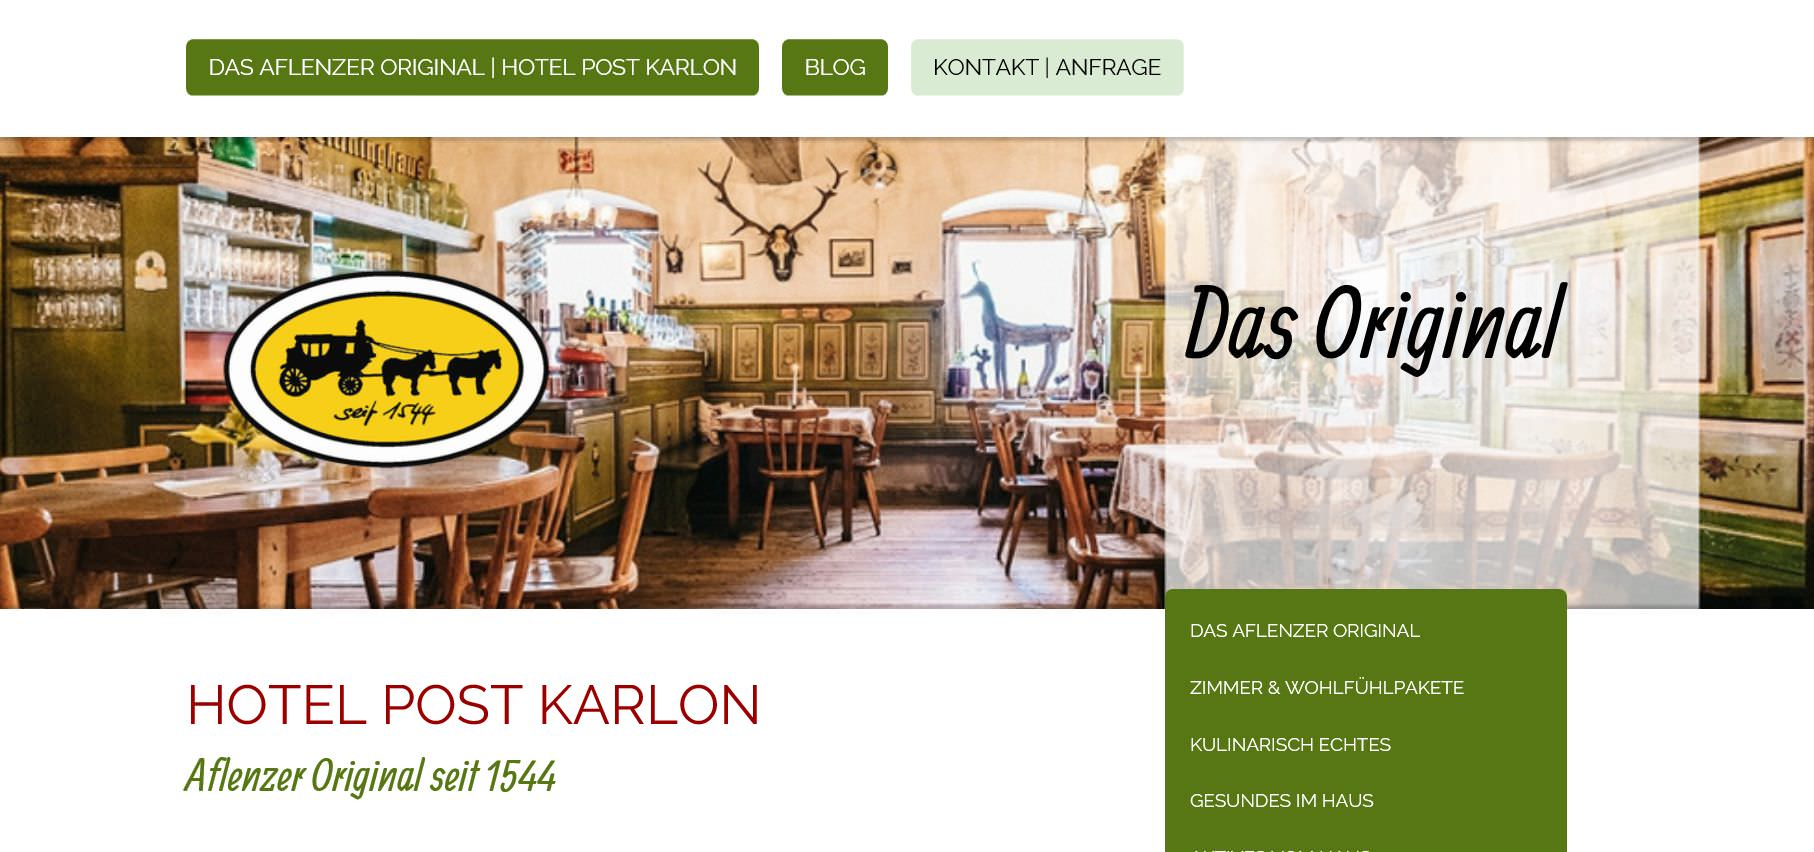 Neupositionierung, Design, Text, Website: Hotel Post Karlon [DAS Aflenzer Original]